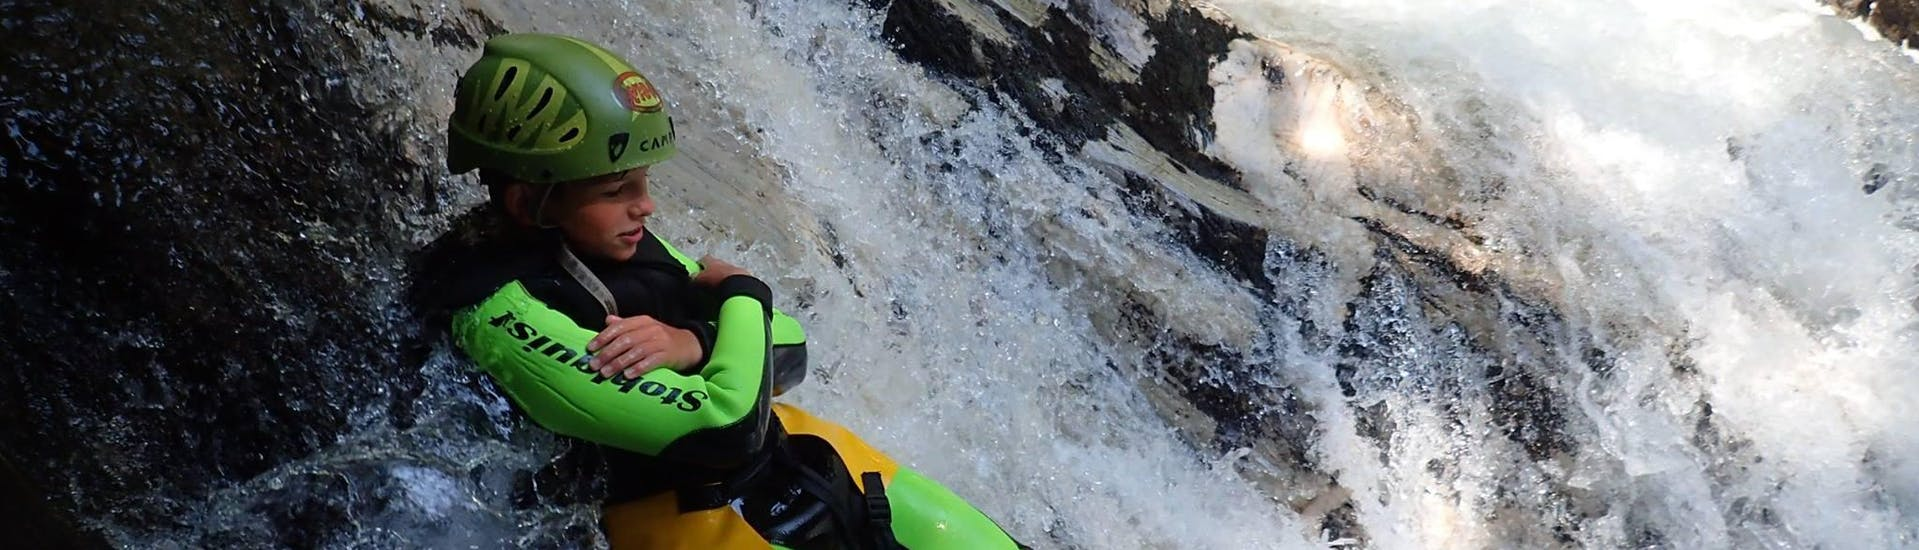 Canyoning for Families - Fragantschlucht